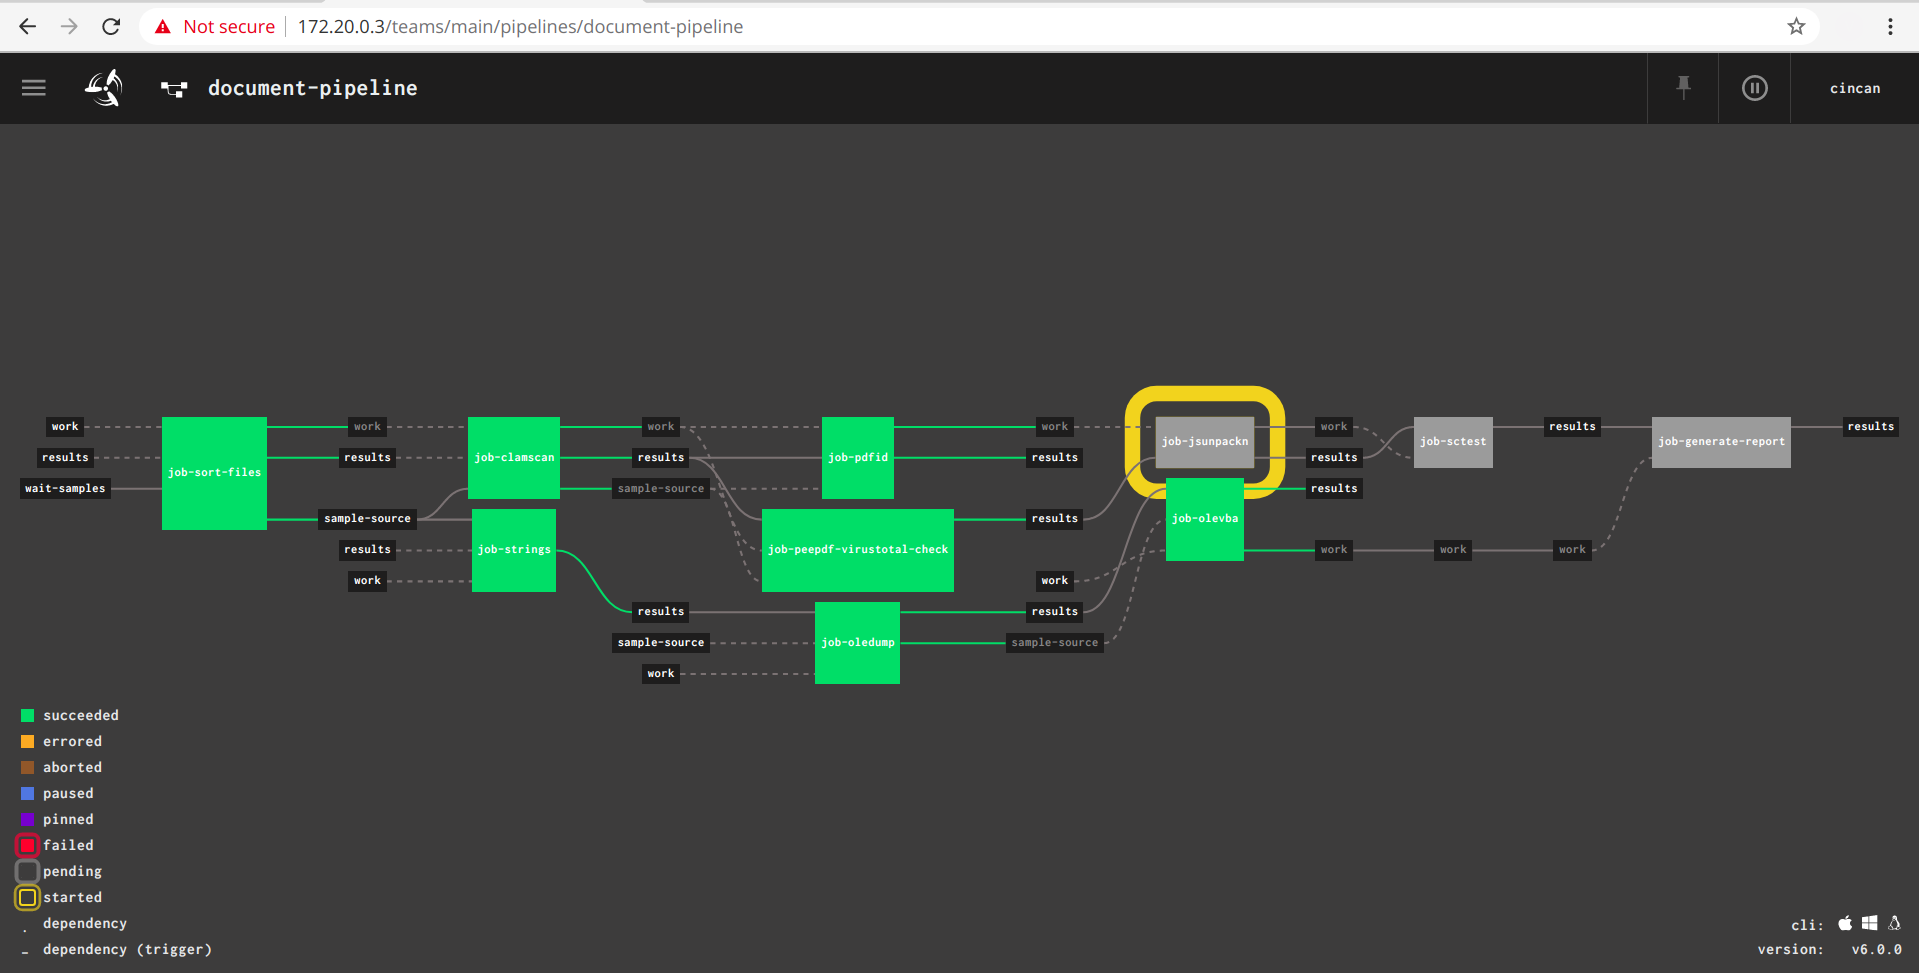 The document-pipeline view in Concourse CI